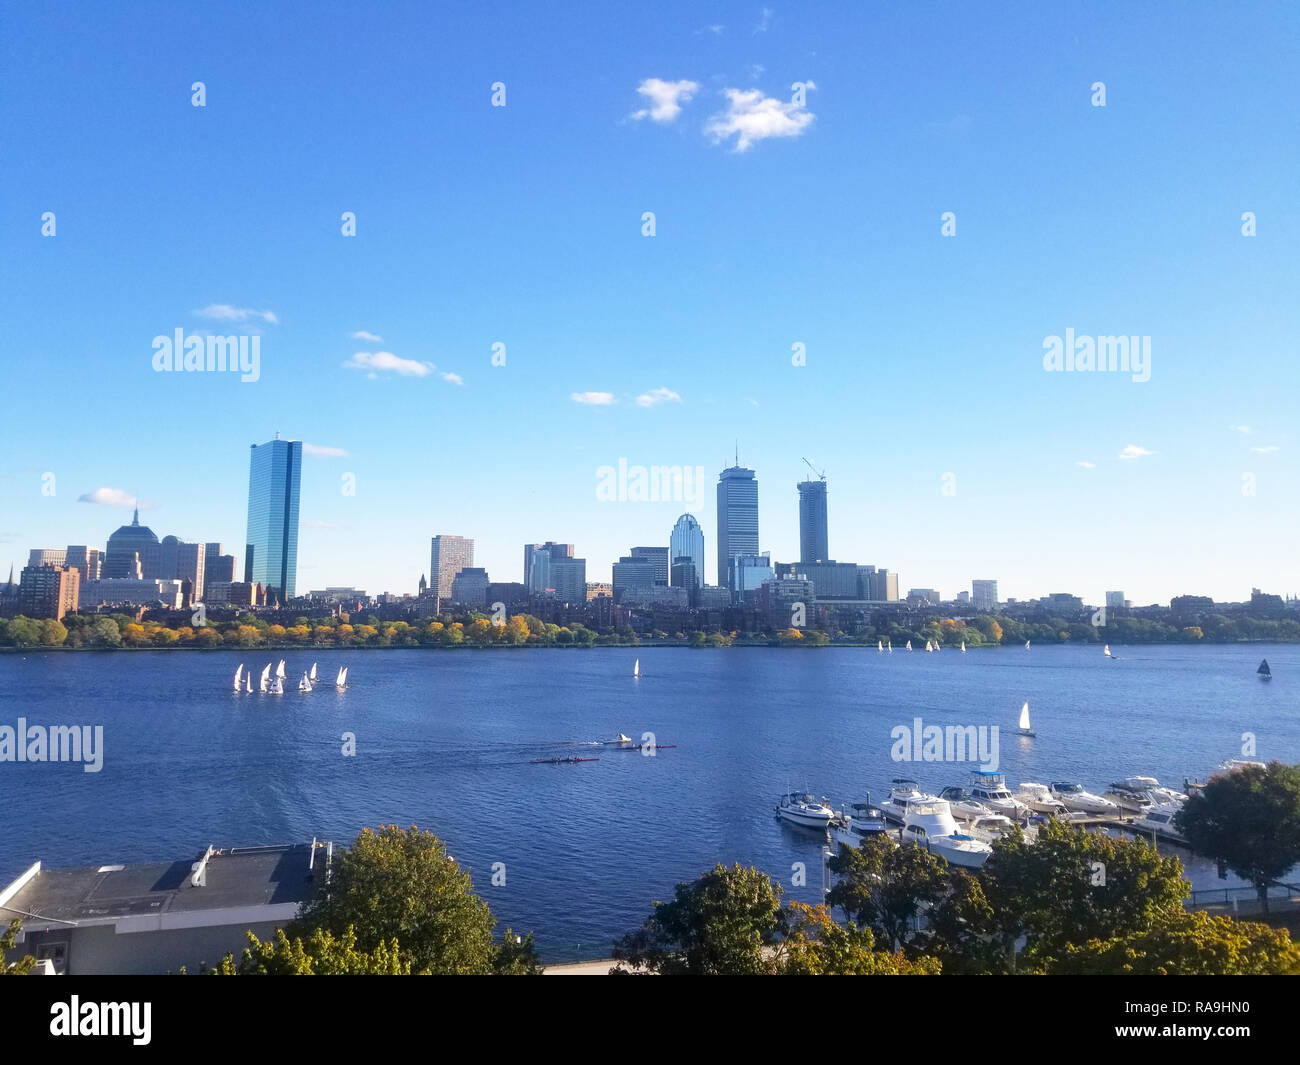 Boston Skyline Across the Charles River. On a sunny day. Boats on the river. Stock Photo